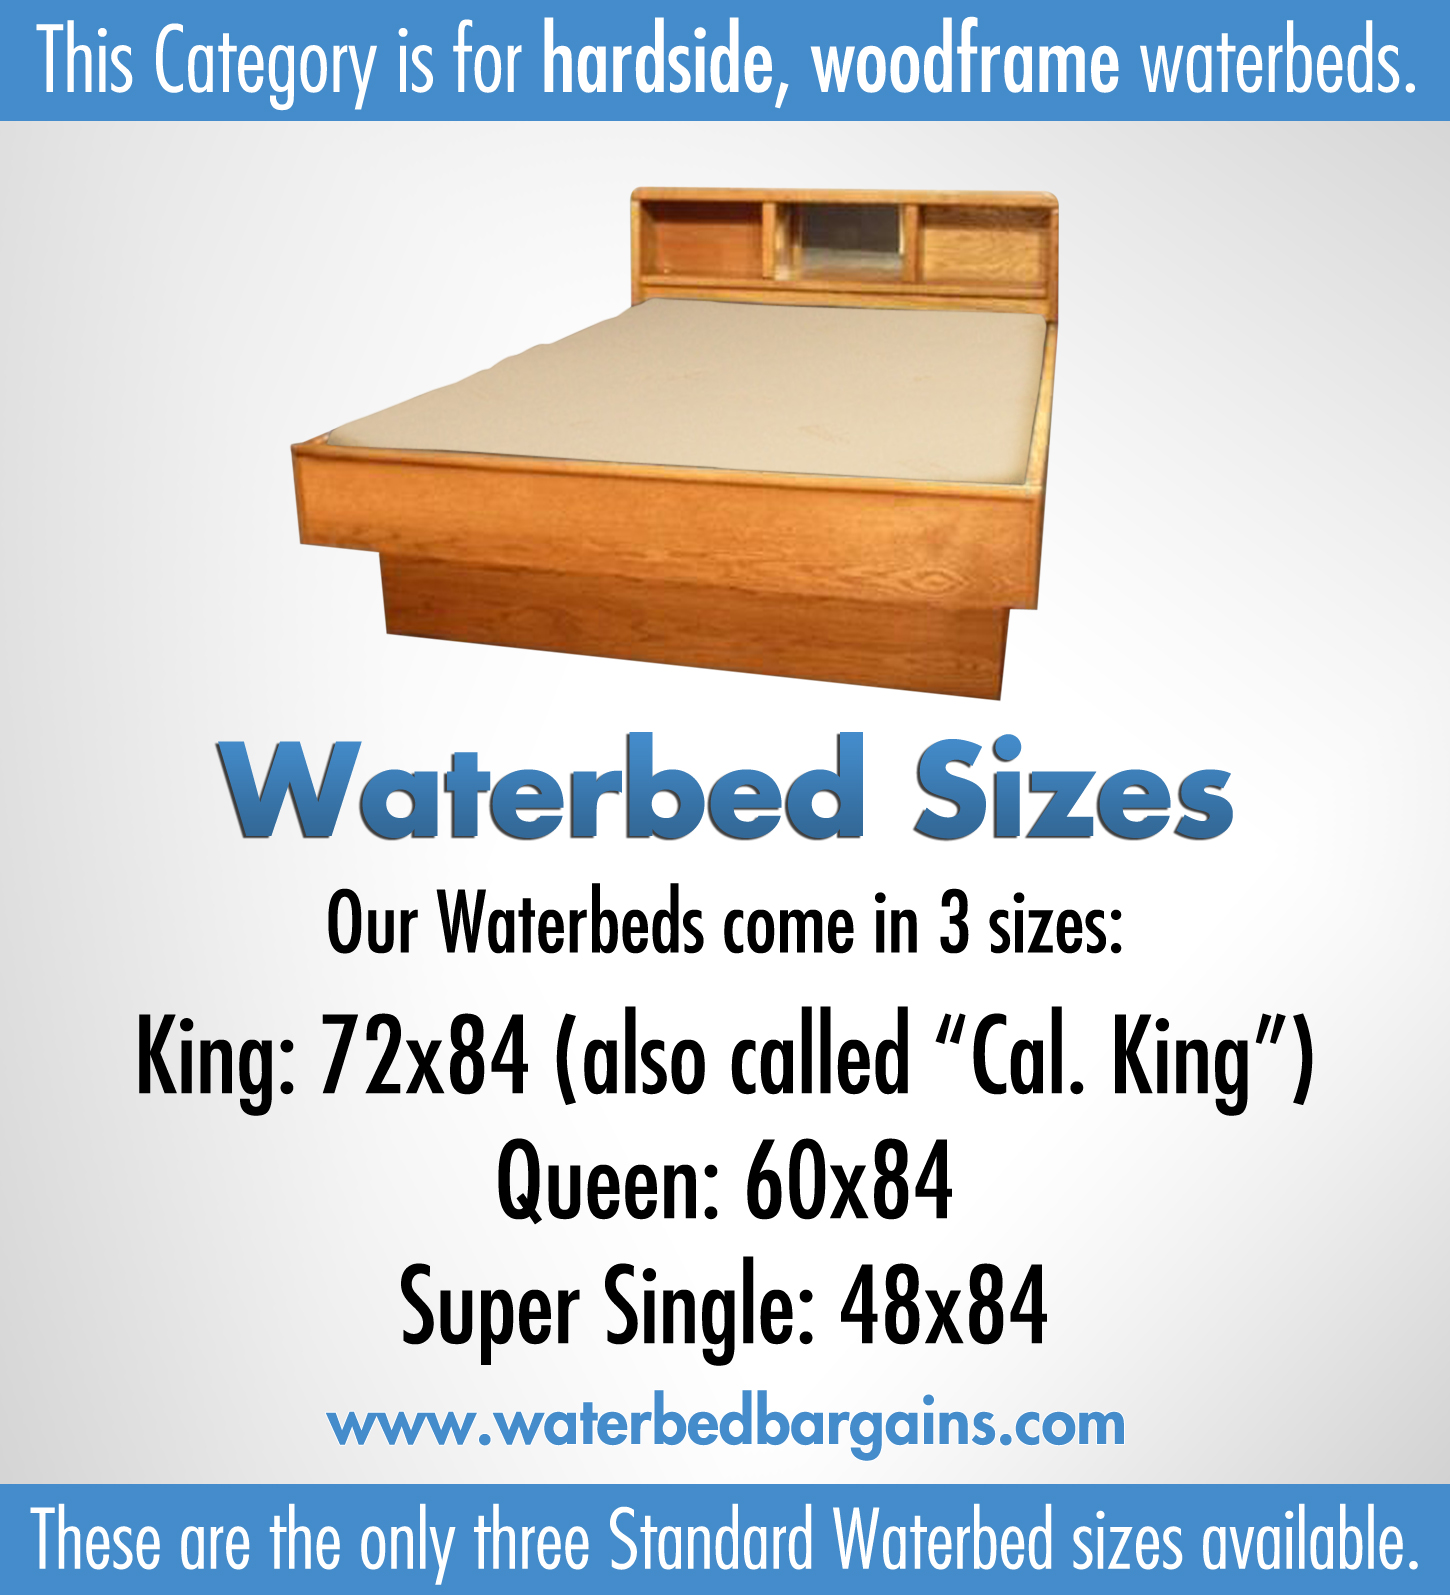 Hardside Waterbeds and the common only sizes.